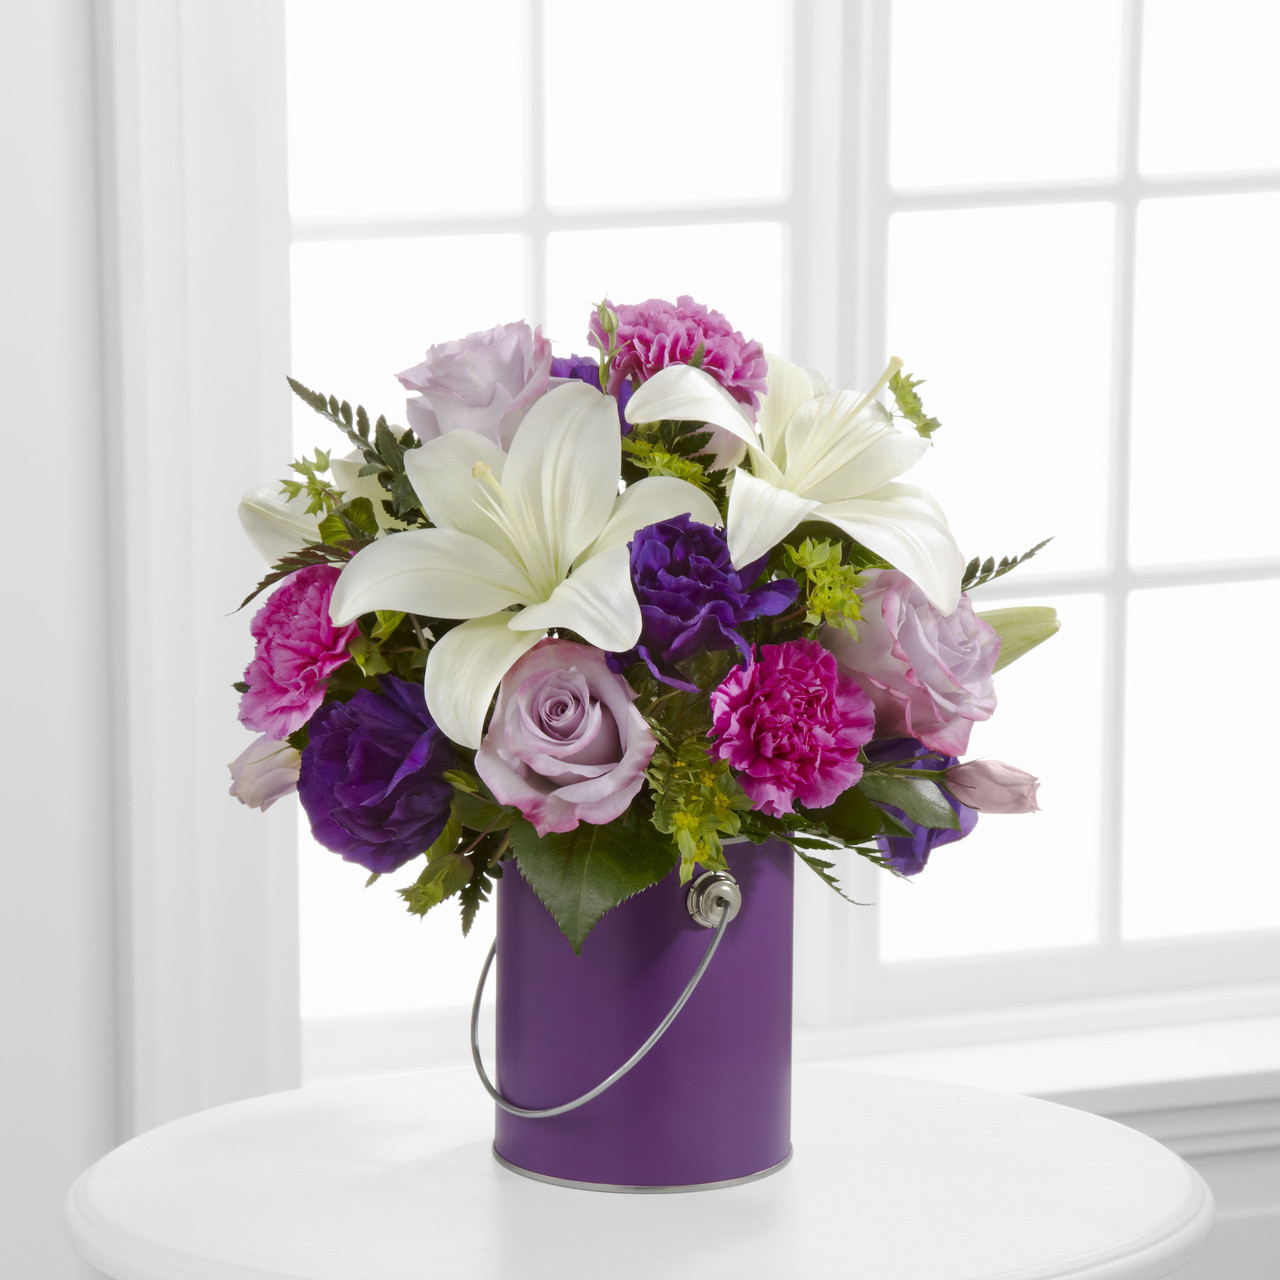 Color Your Day With Beauty Bouquet Simi Valley Flower Delivery